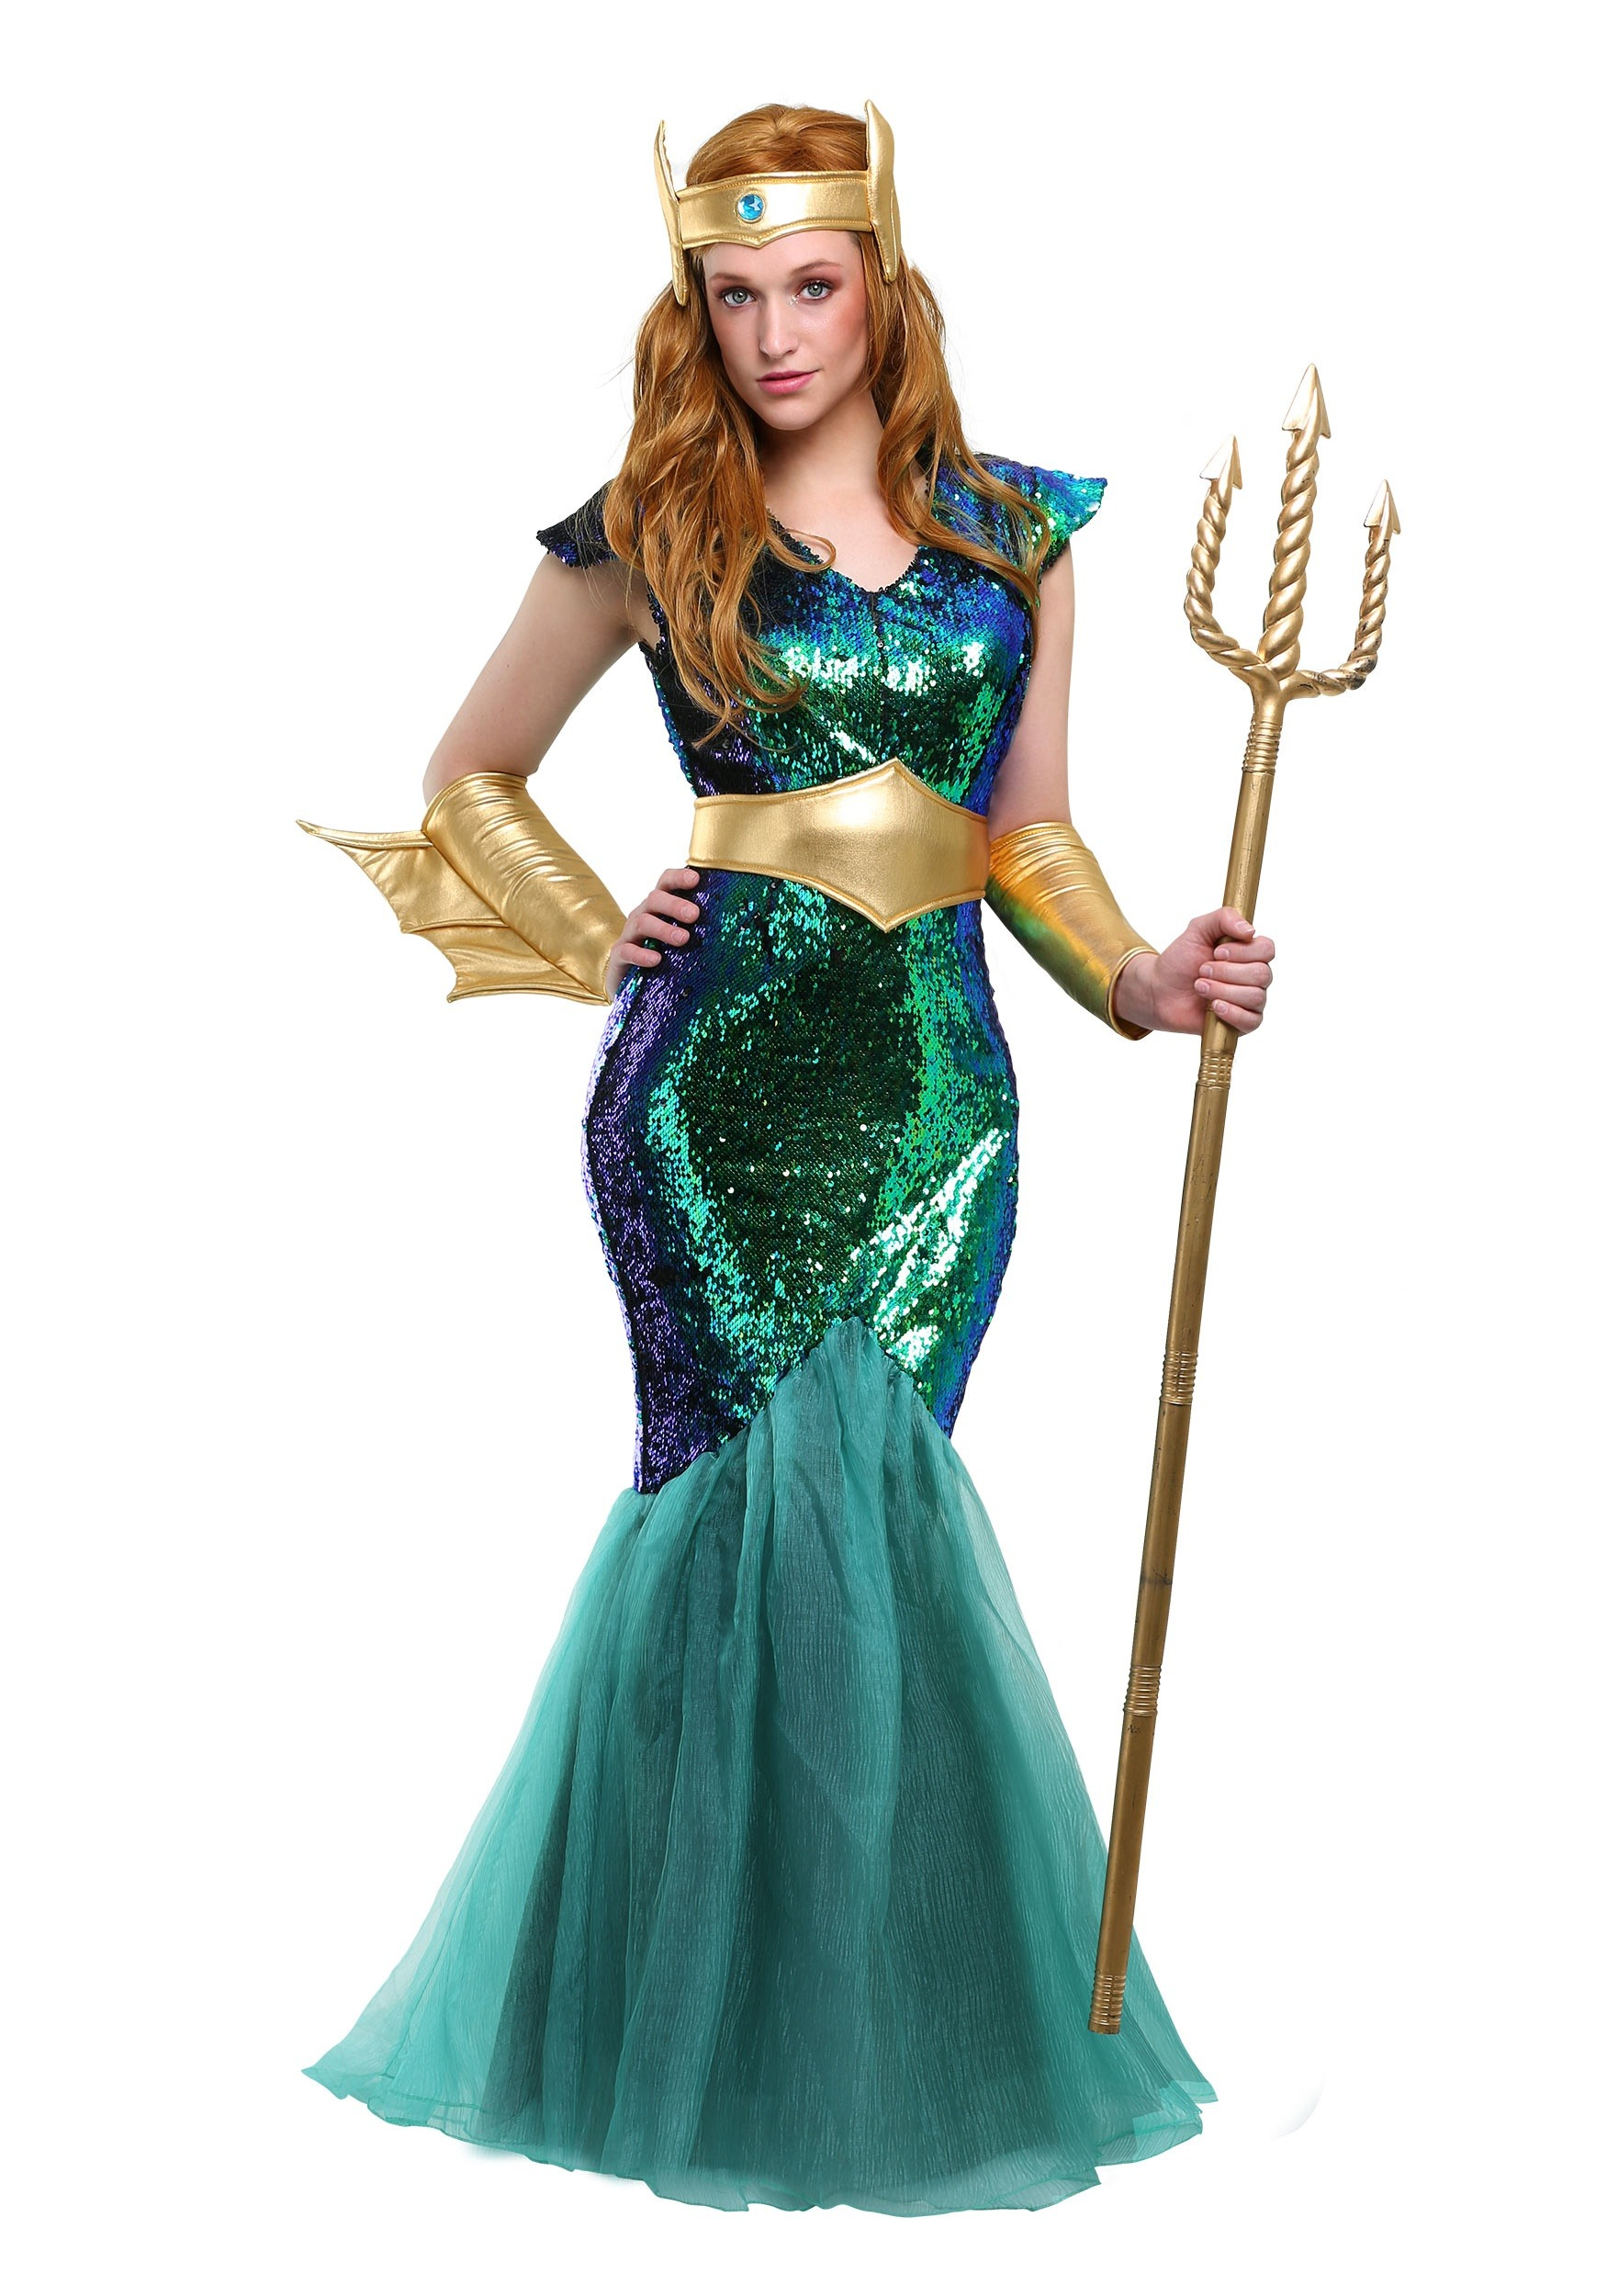 Mermaid Costumes - Adult, Child Little Mermaid Costumes